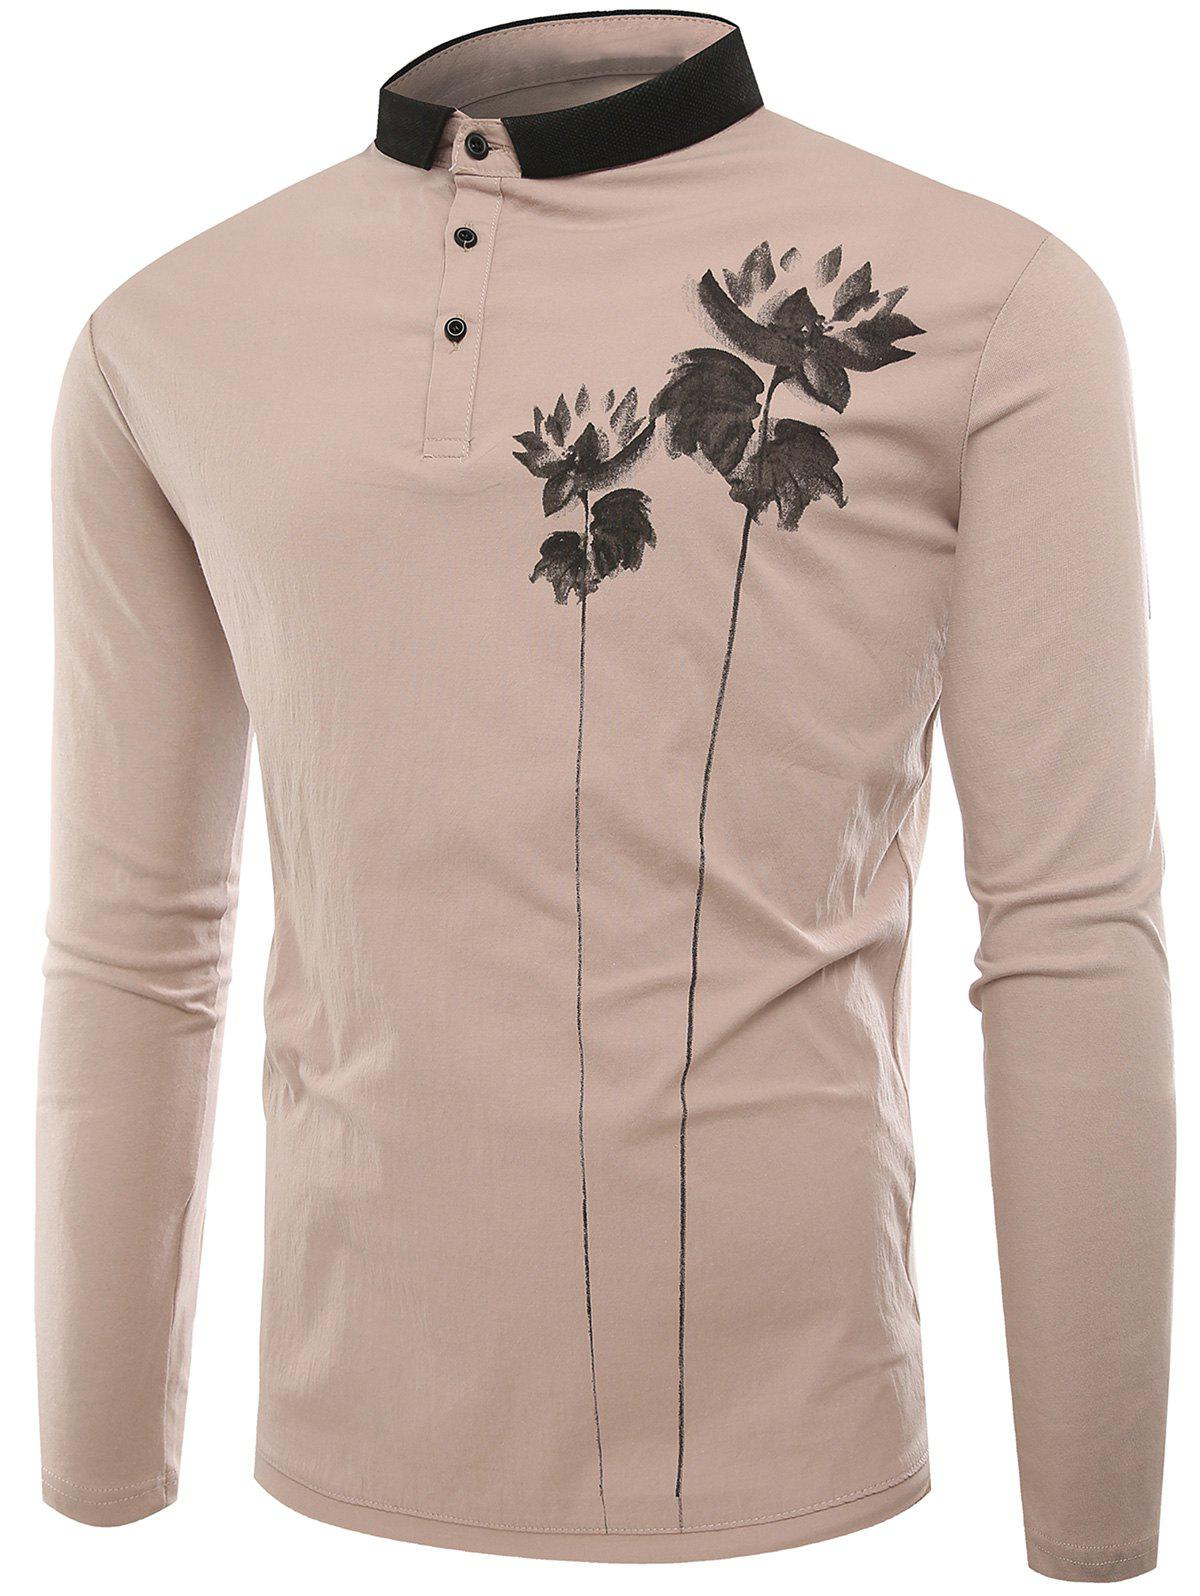 Buttons Lotus Print Polo T-shirt - APRICOT 3XL